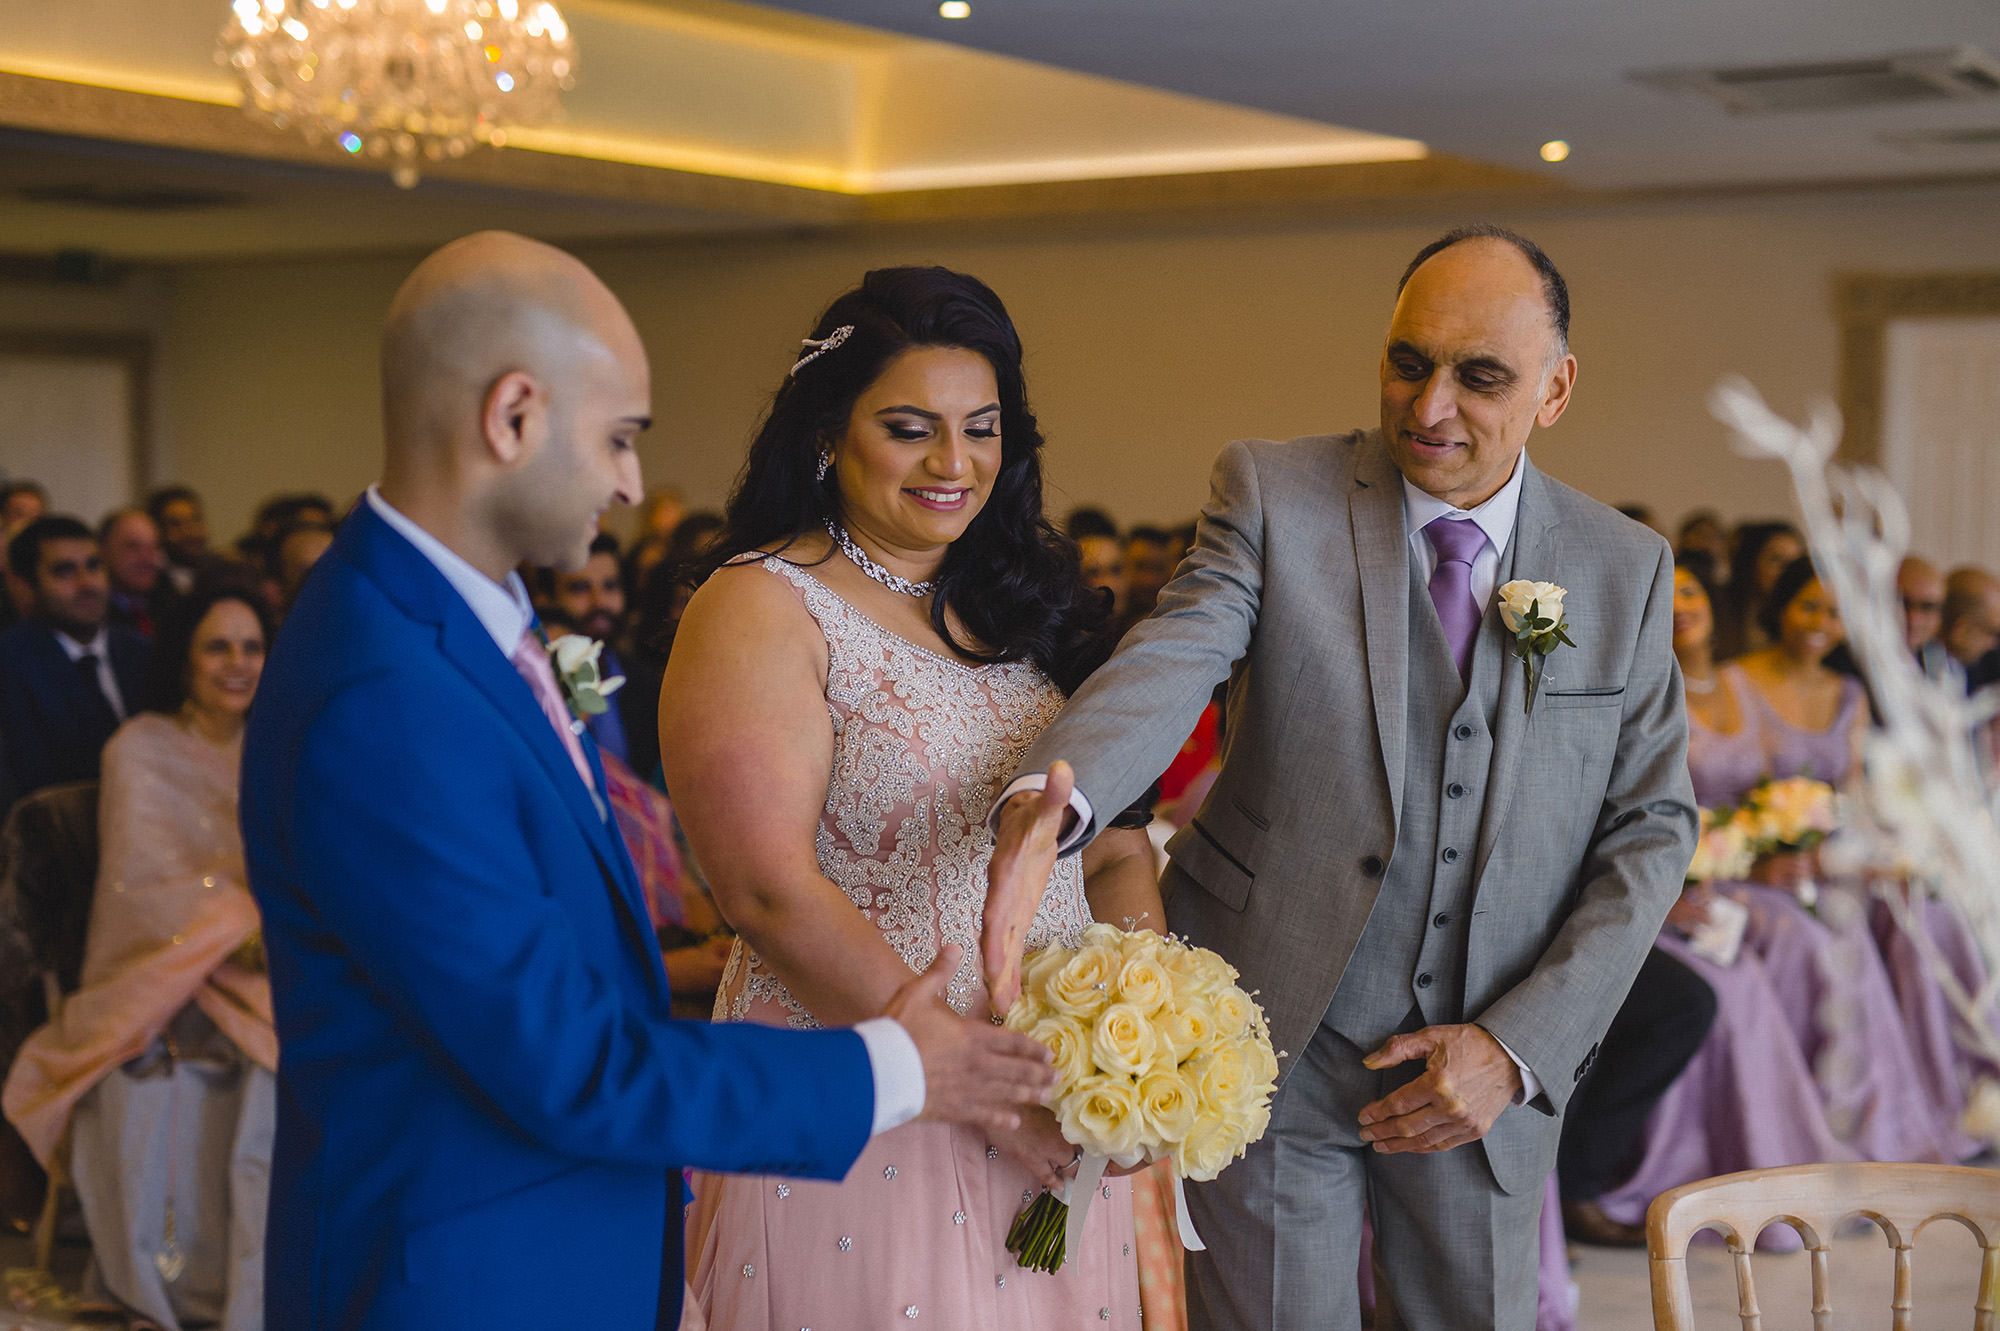 father of the bride shaking hands with groom at wedding ceremony